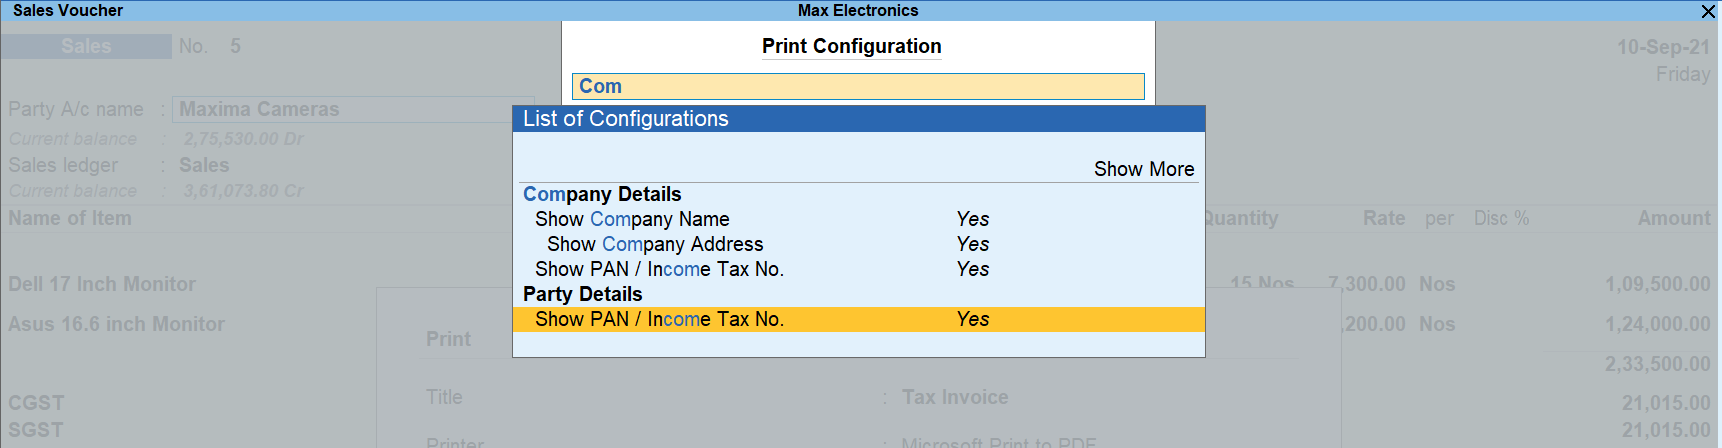 Printing PAN on invoices